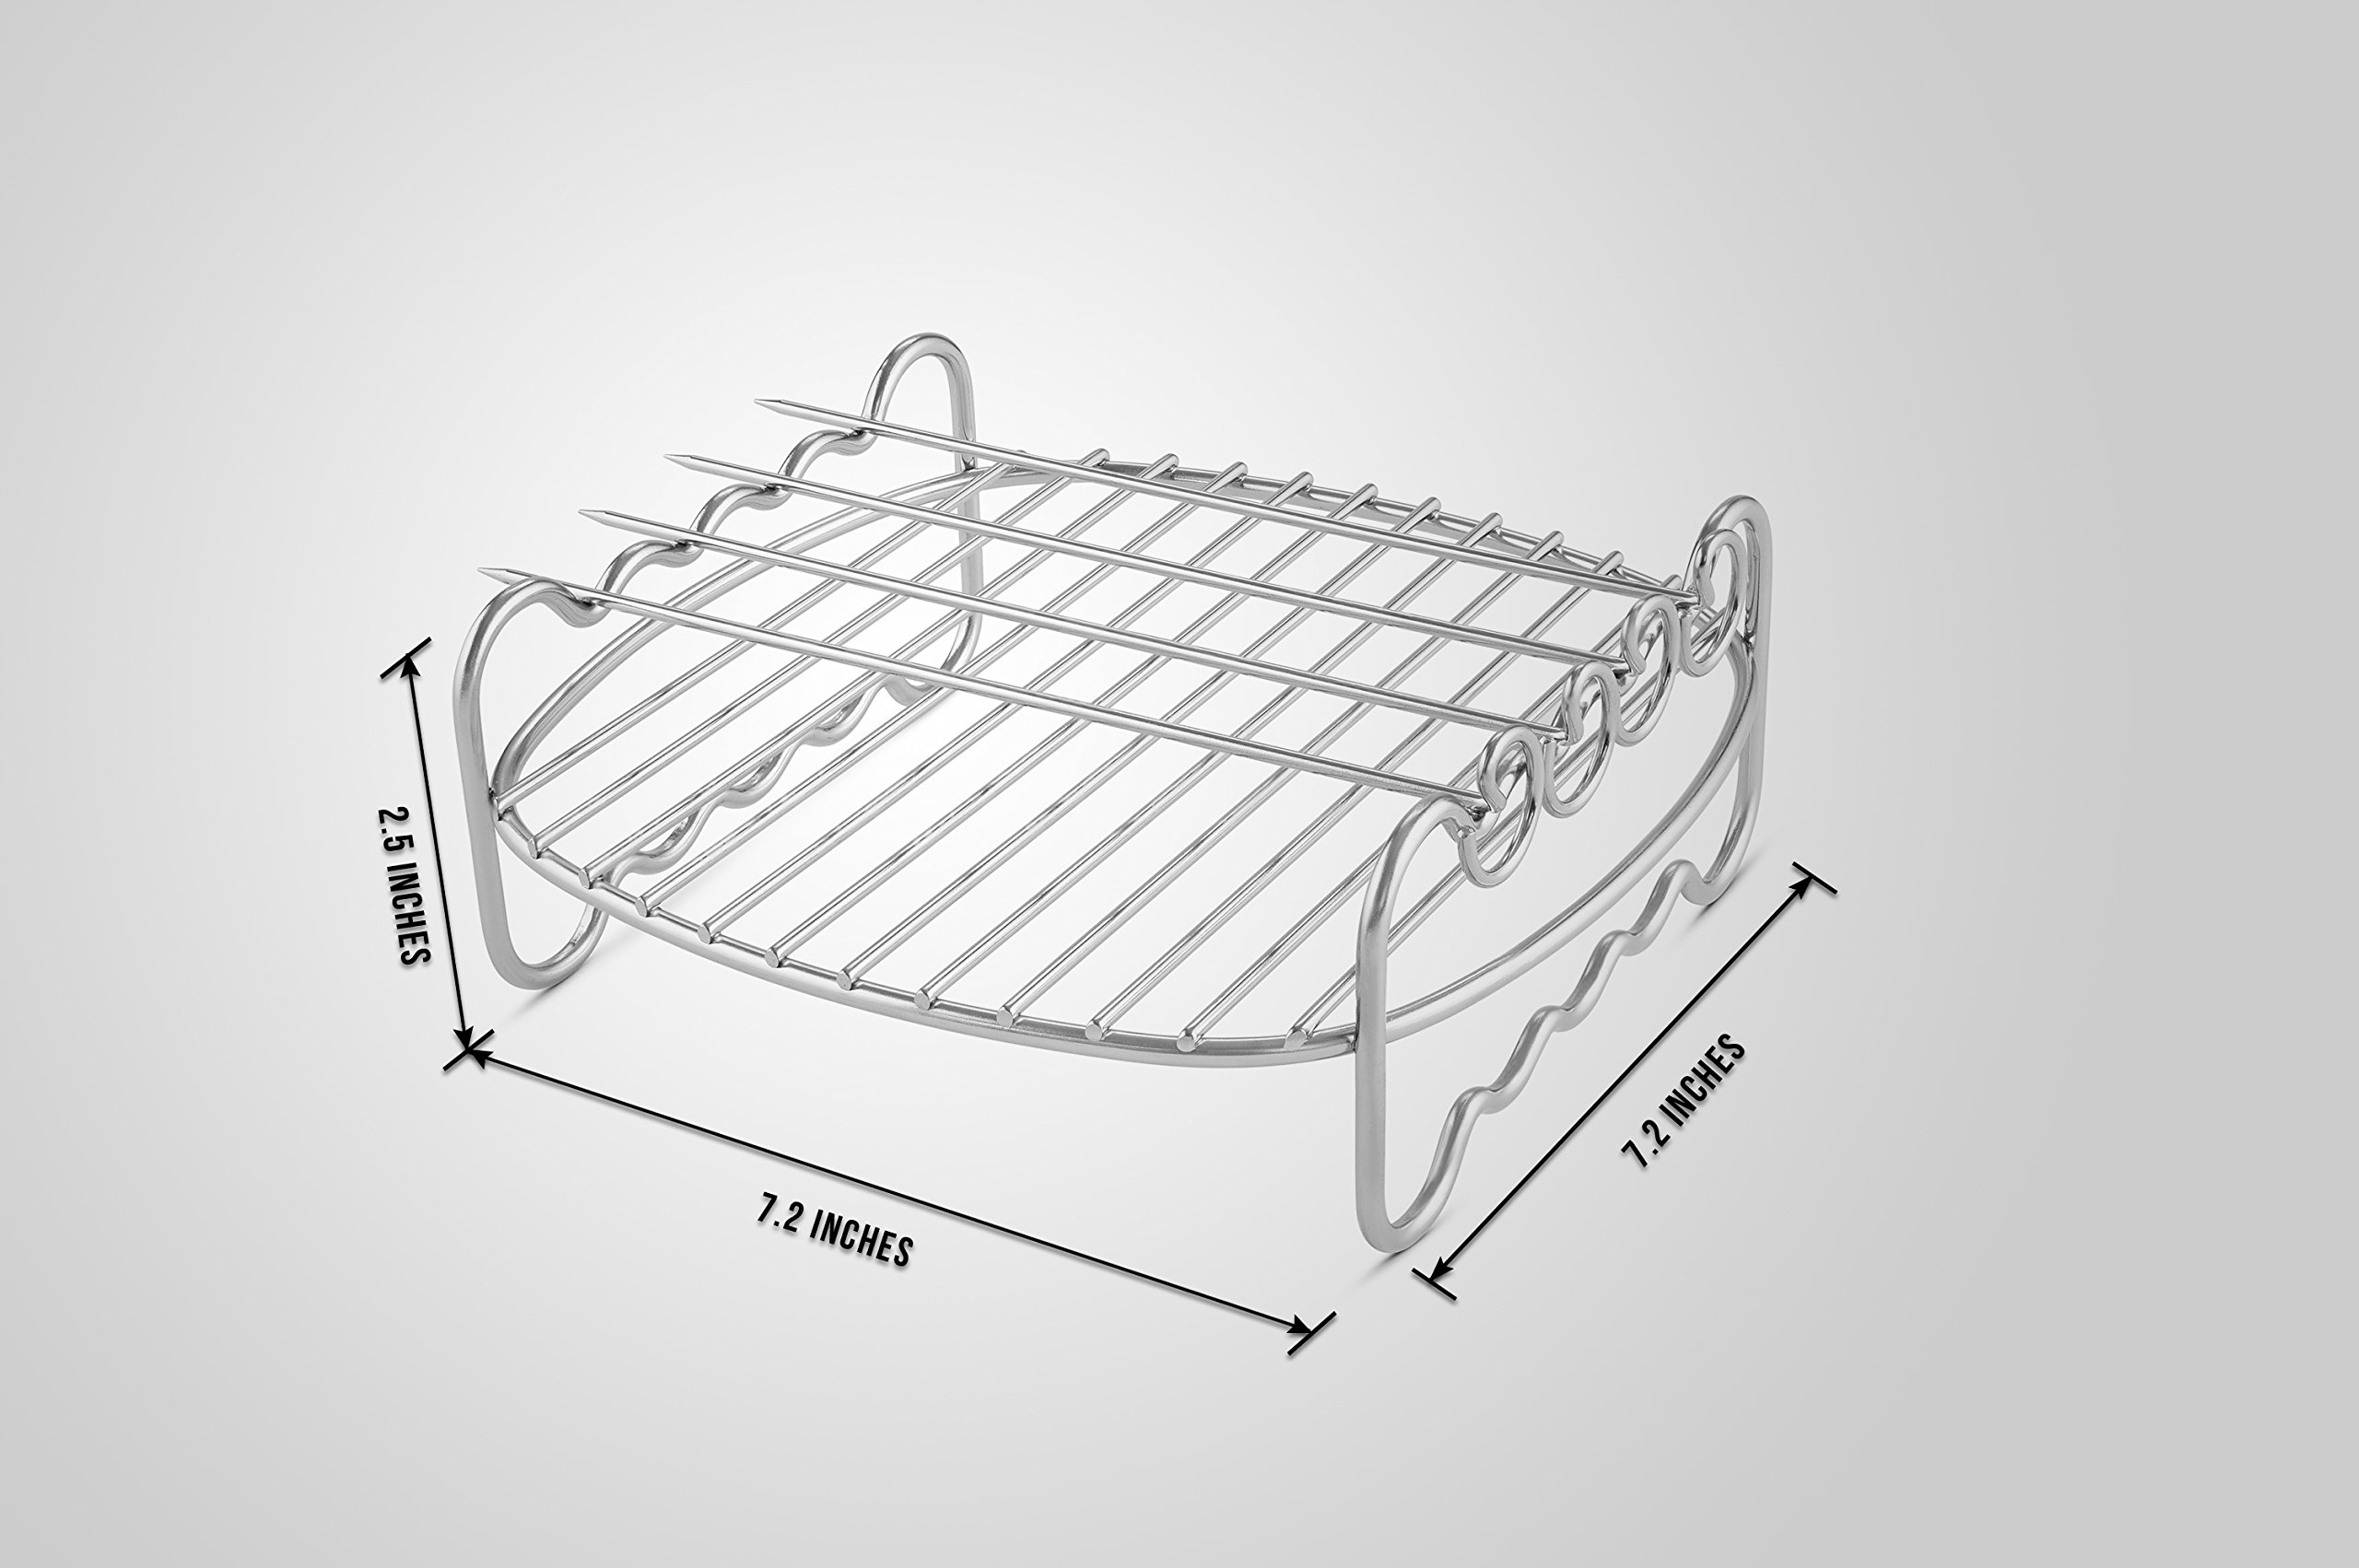 Airfryer Double Layer Rack With 4 Skewers Compatible With